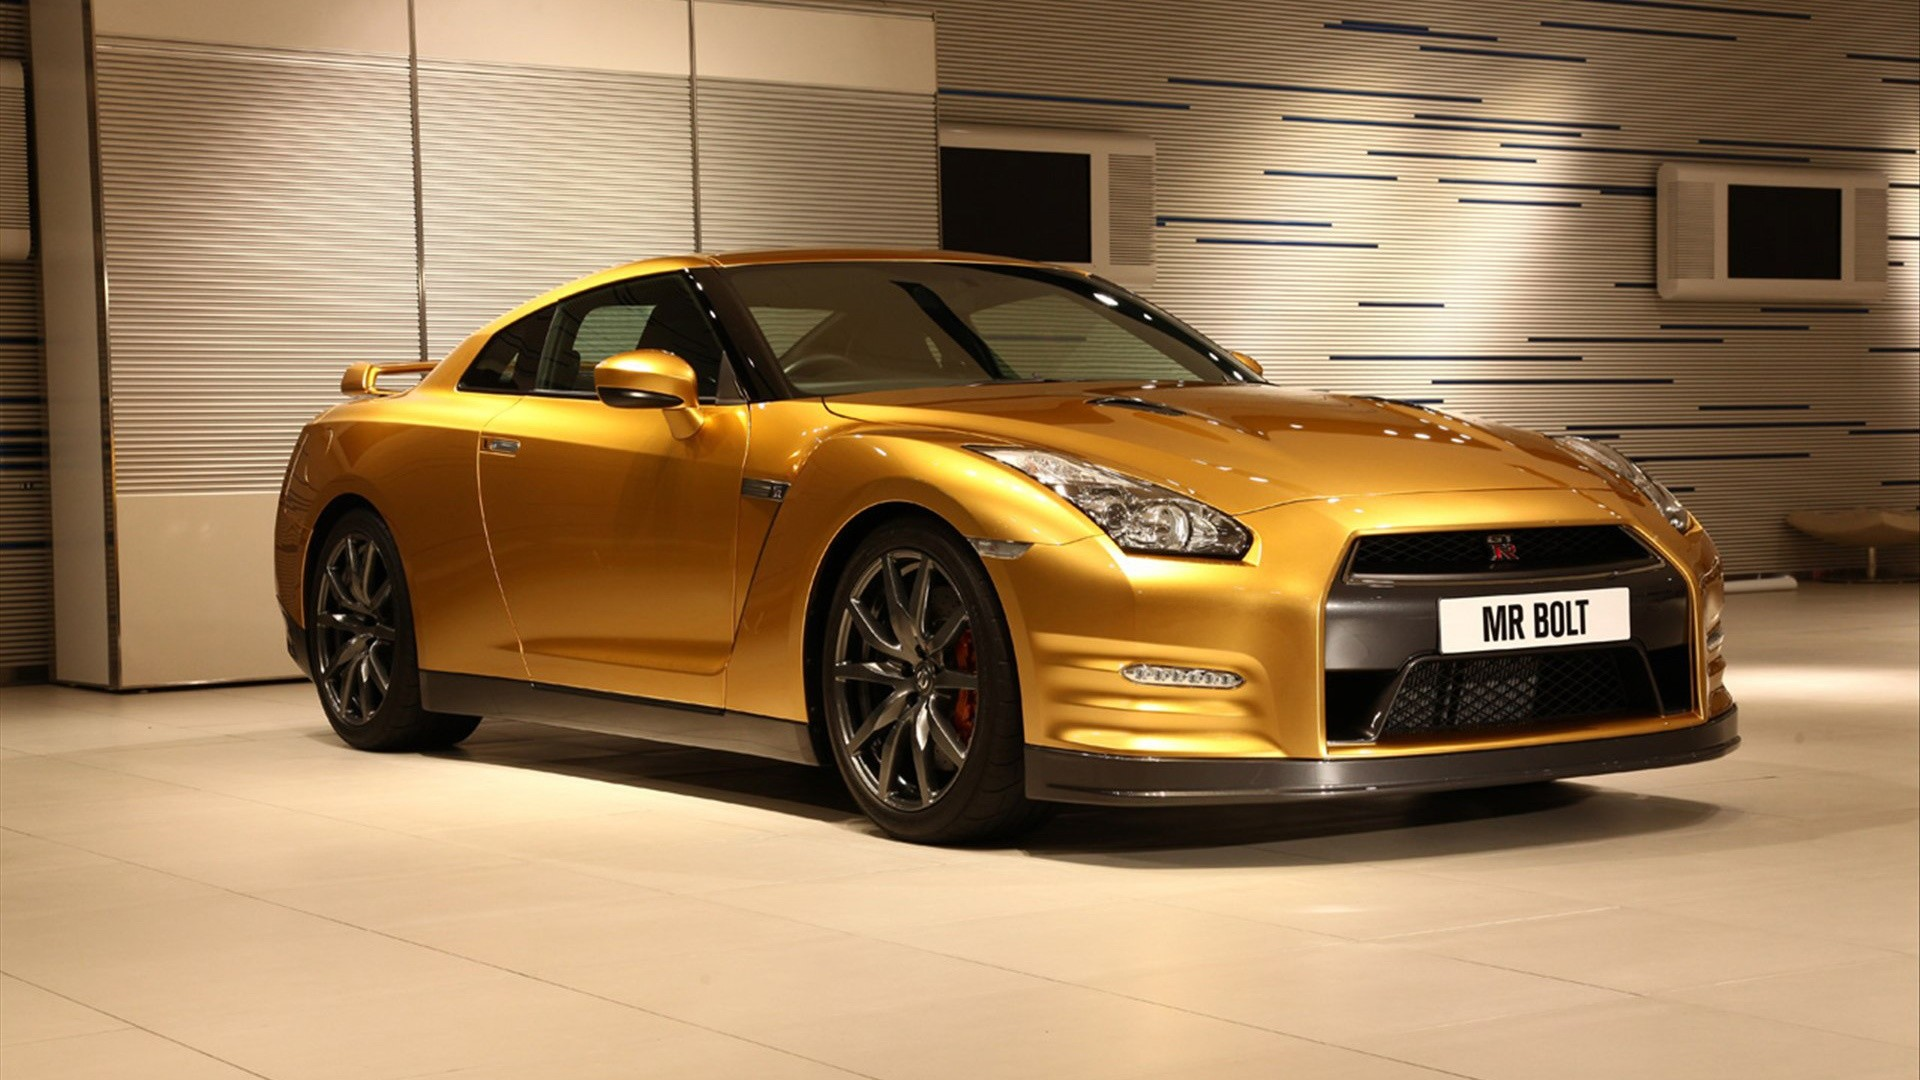 Cool Gold Cars Wallpapers 57 Images